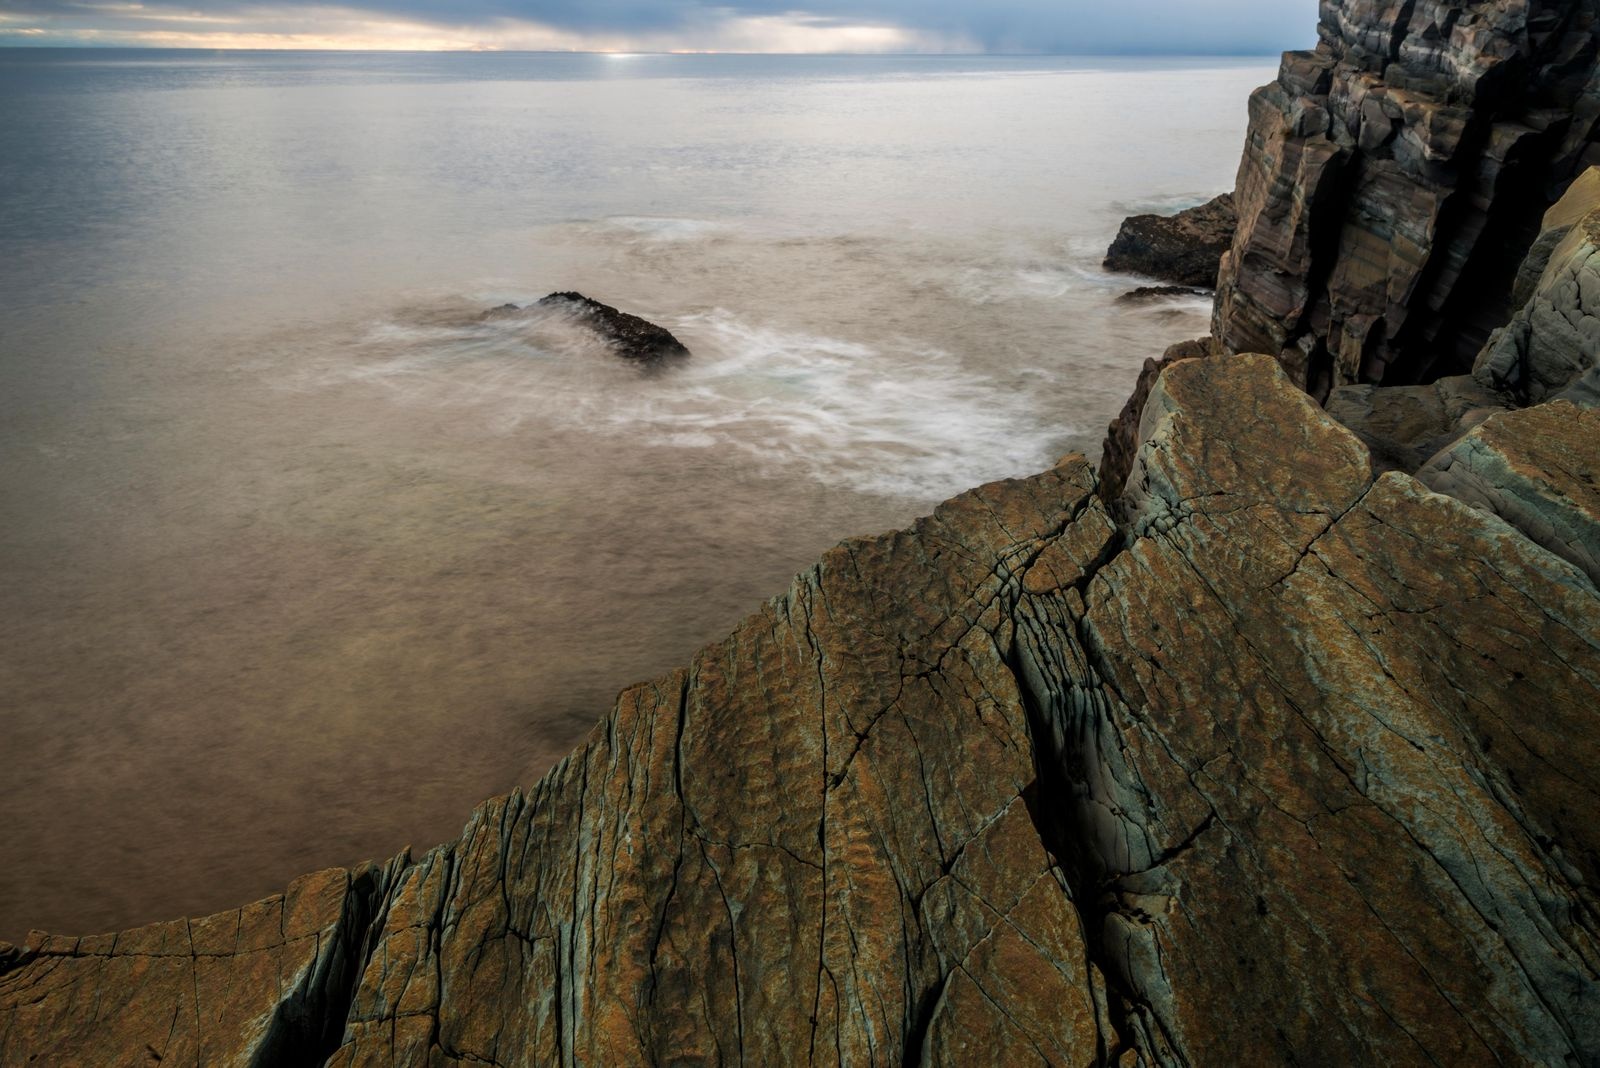 Darwin Would Have Loved the Cliffs of Newfoundland, Where